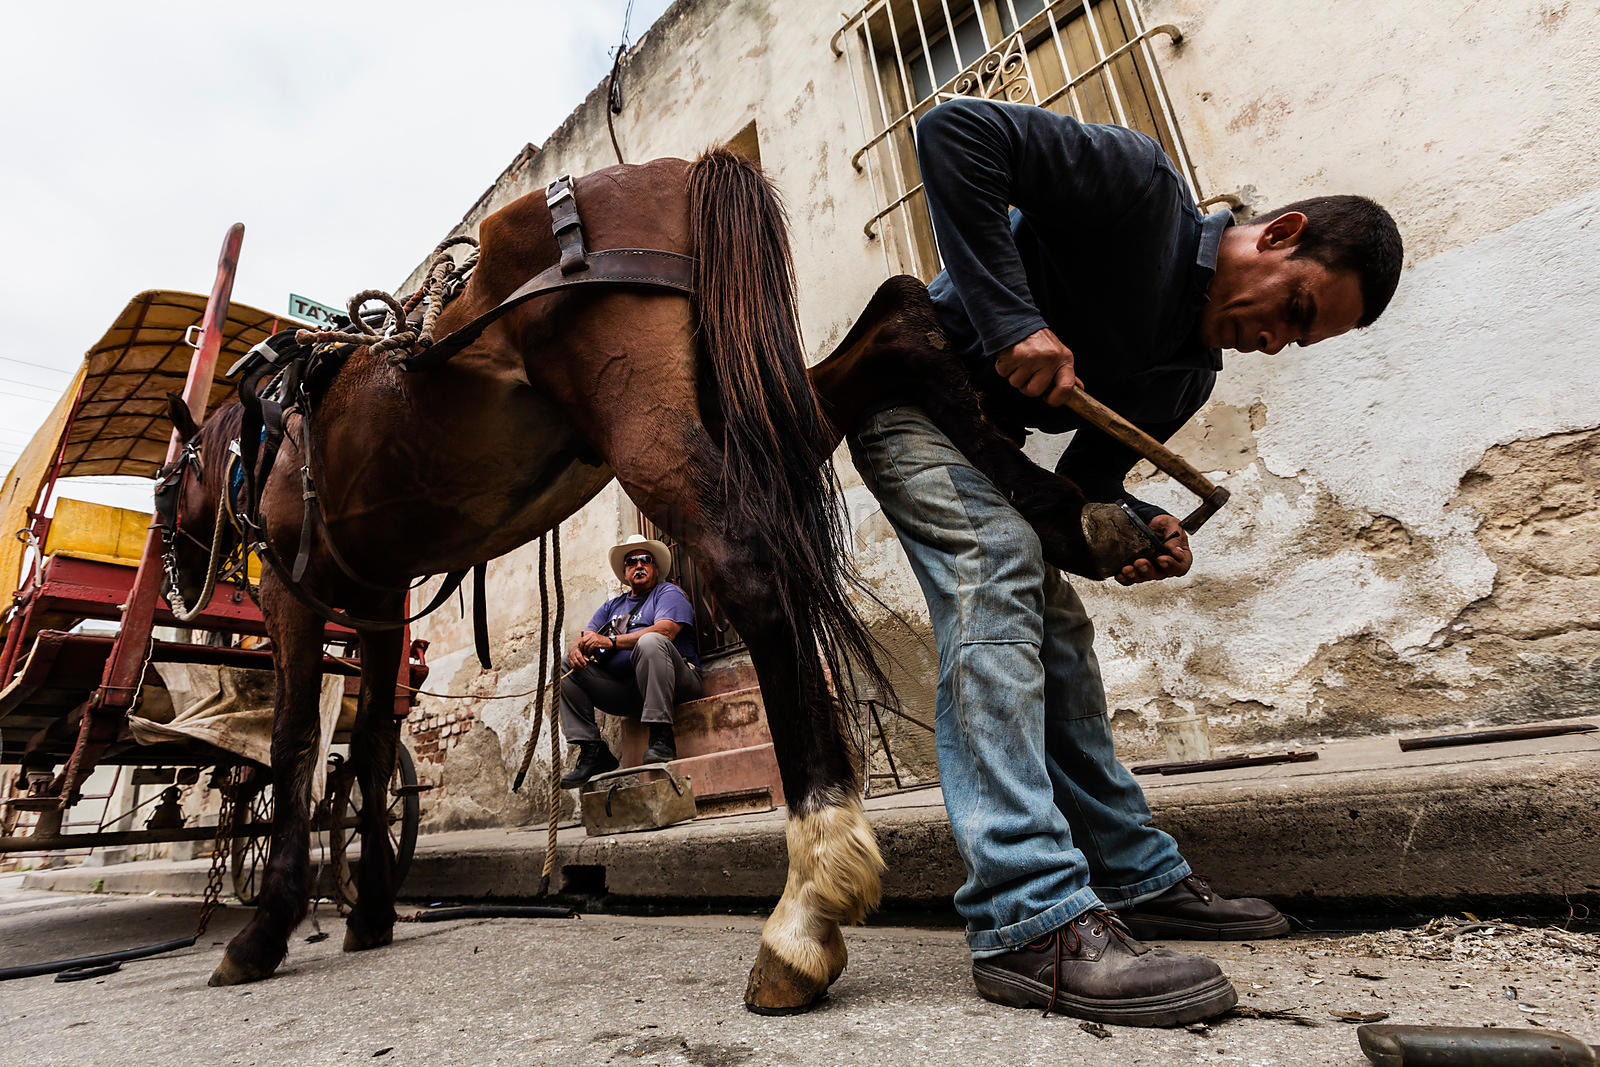 Farrier Nailing New Horseshoe onto Horse's Hoof